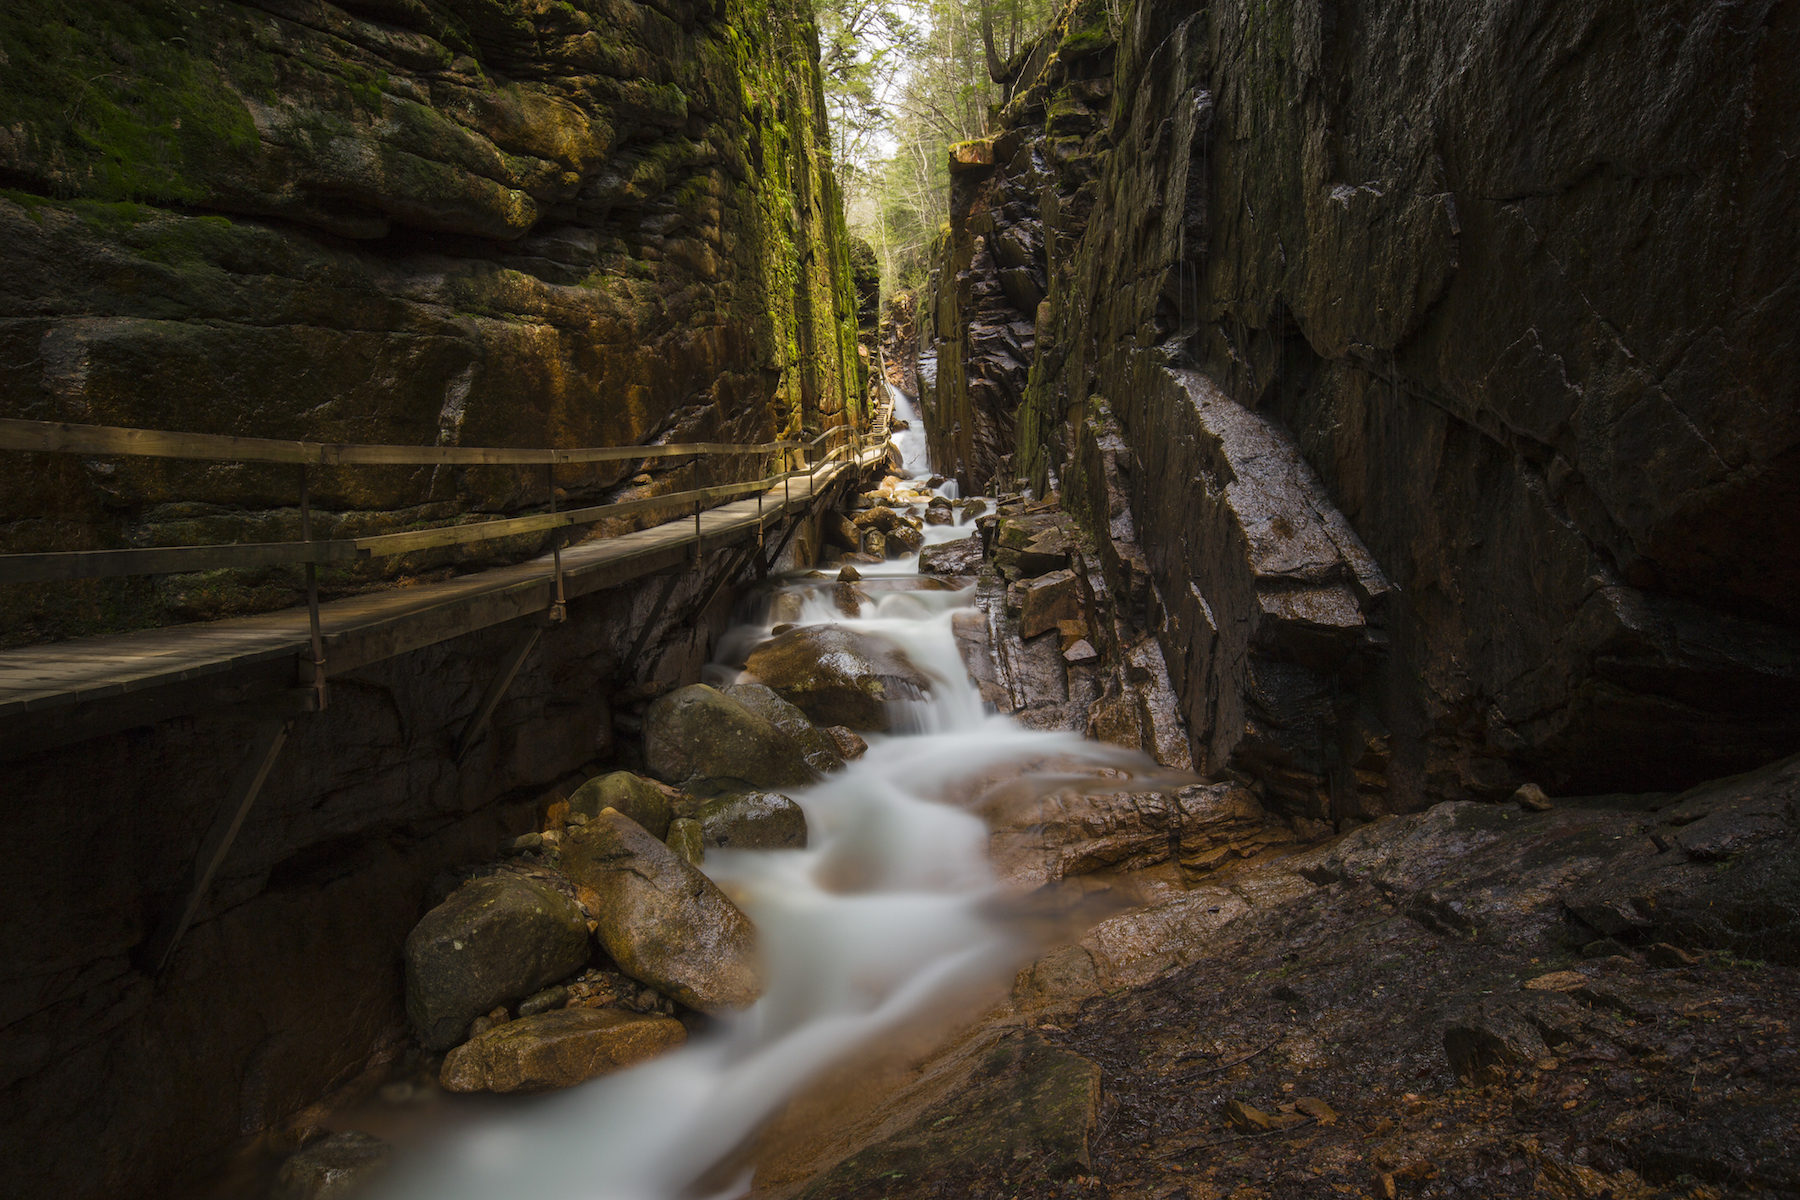 The water flowing beside a wooden walkway in the Flume Gorge in Franconia Notch State Park.